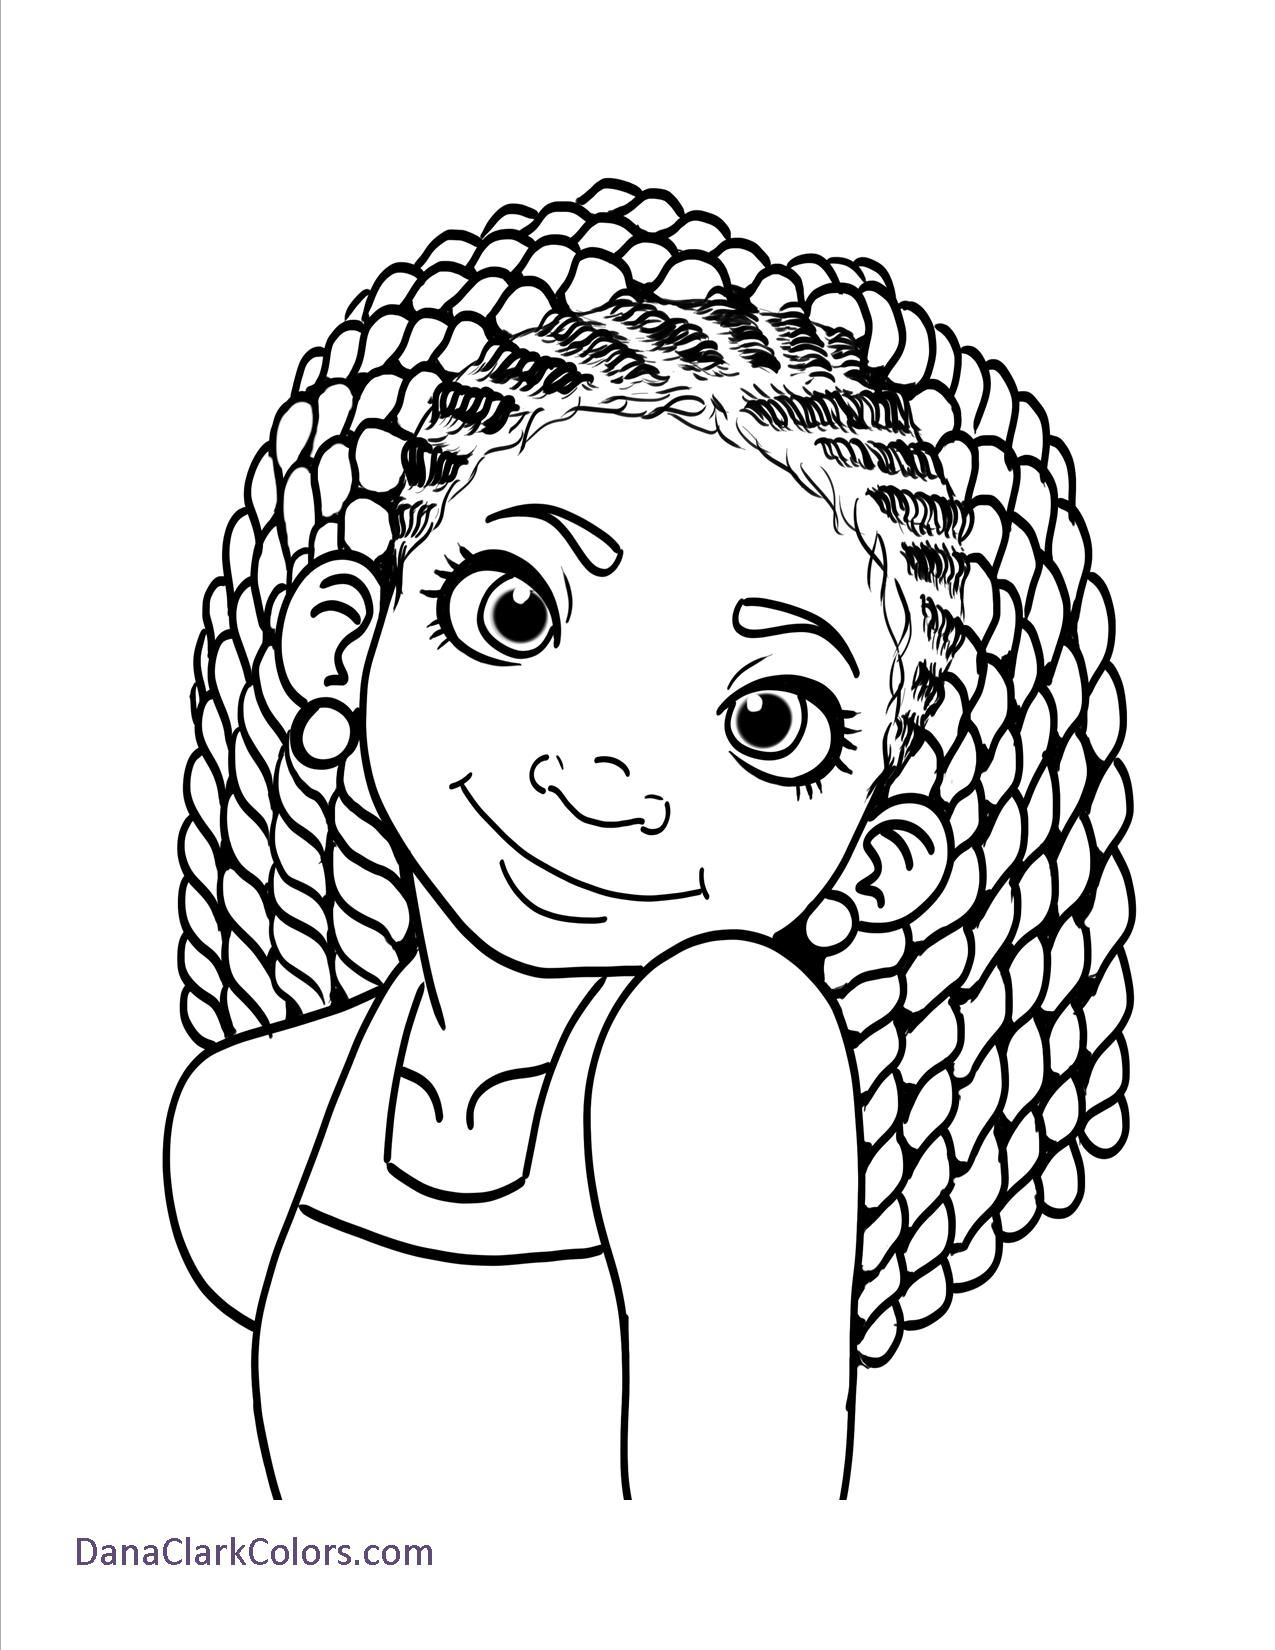 Free Coloring Page 1 Drawings of black girls, Coloring